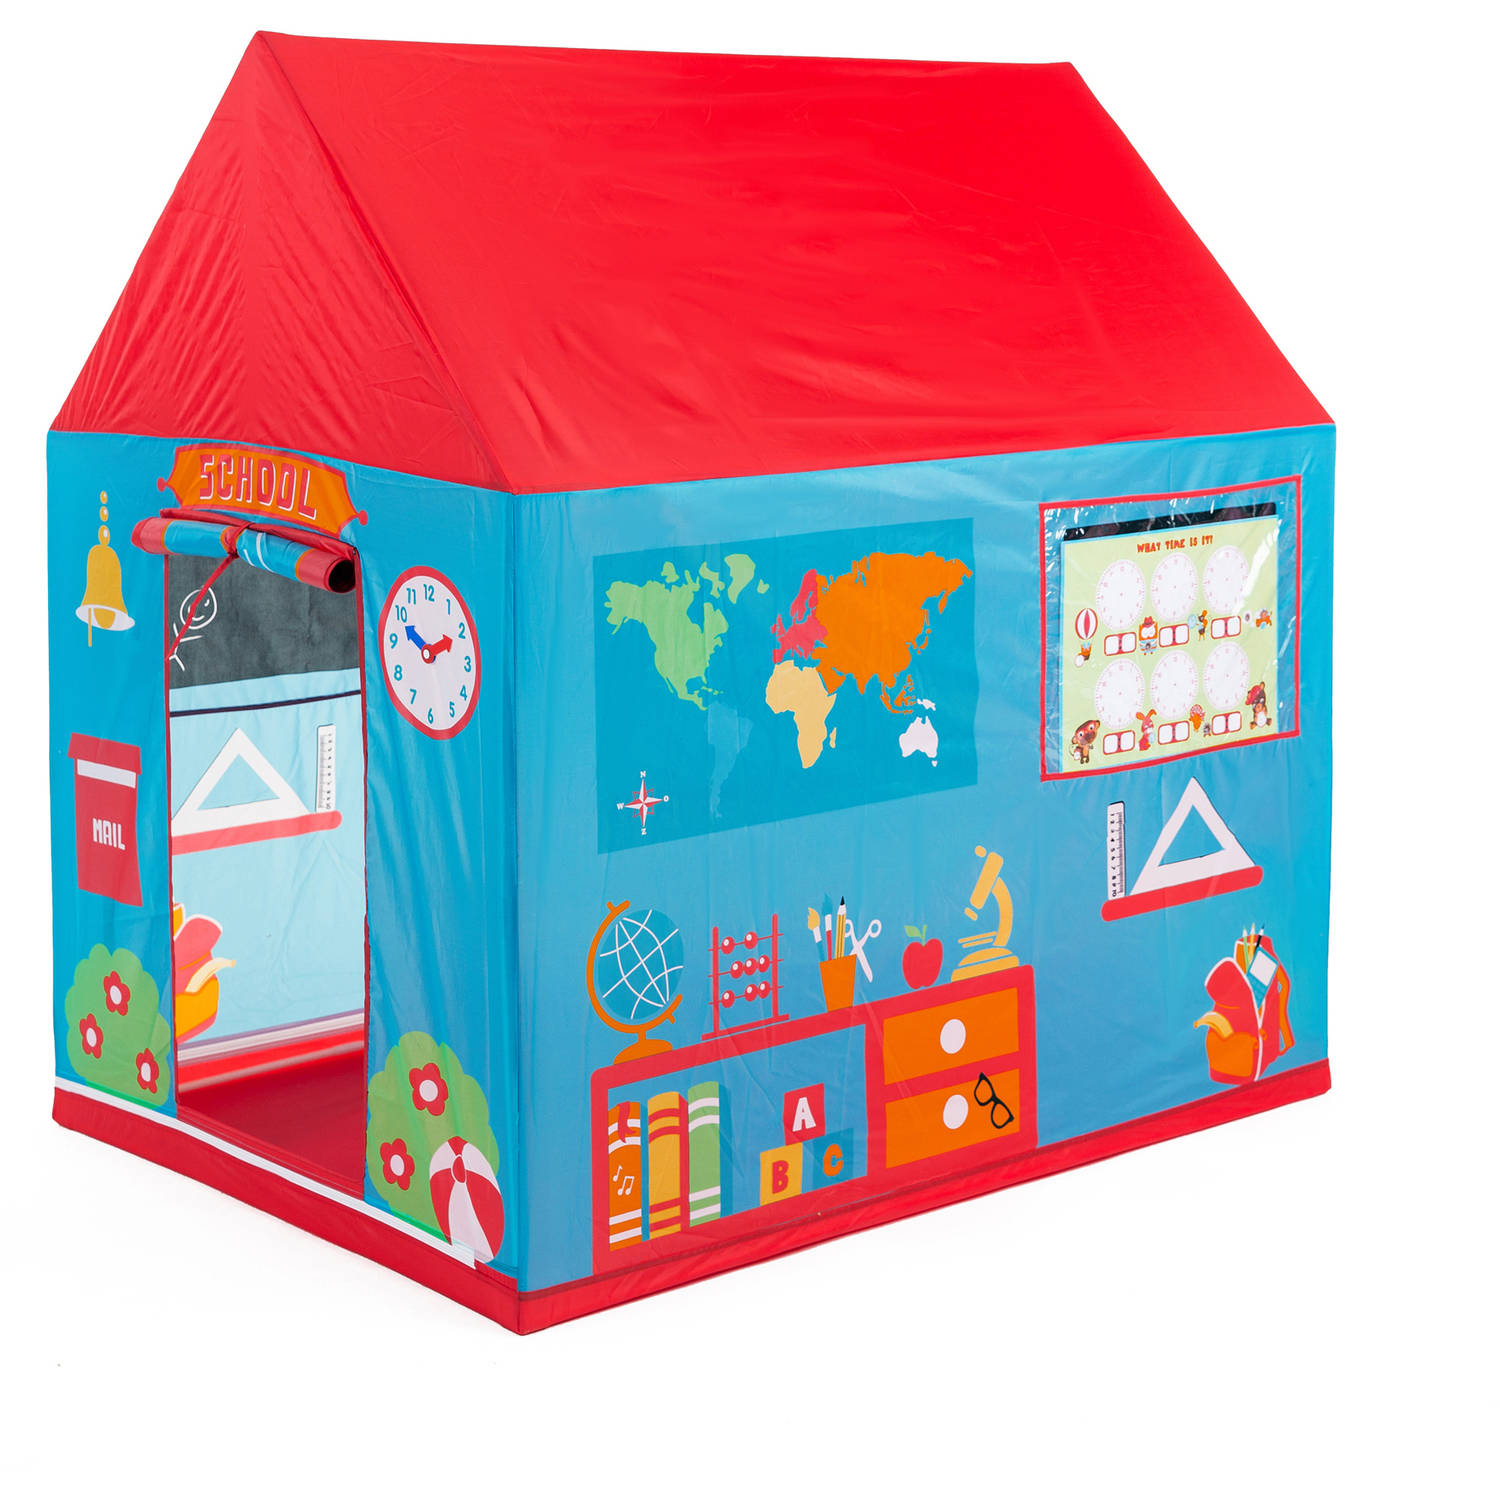 Fun2Give Pop-it-up Play Tent School  sc 1 st  Walmart & Fun2Give Pop-it-up Play Tent School - Walmart.com